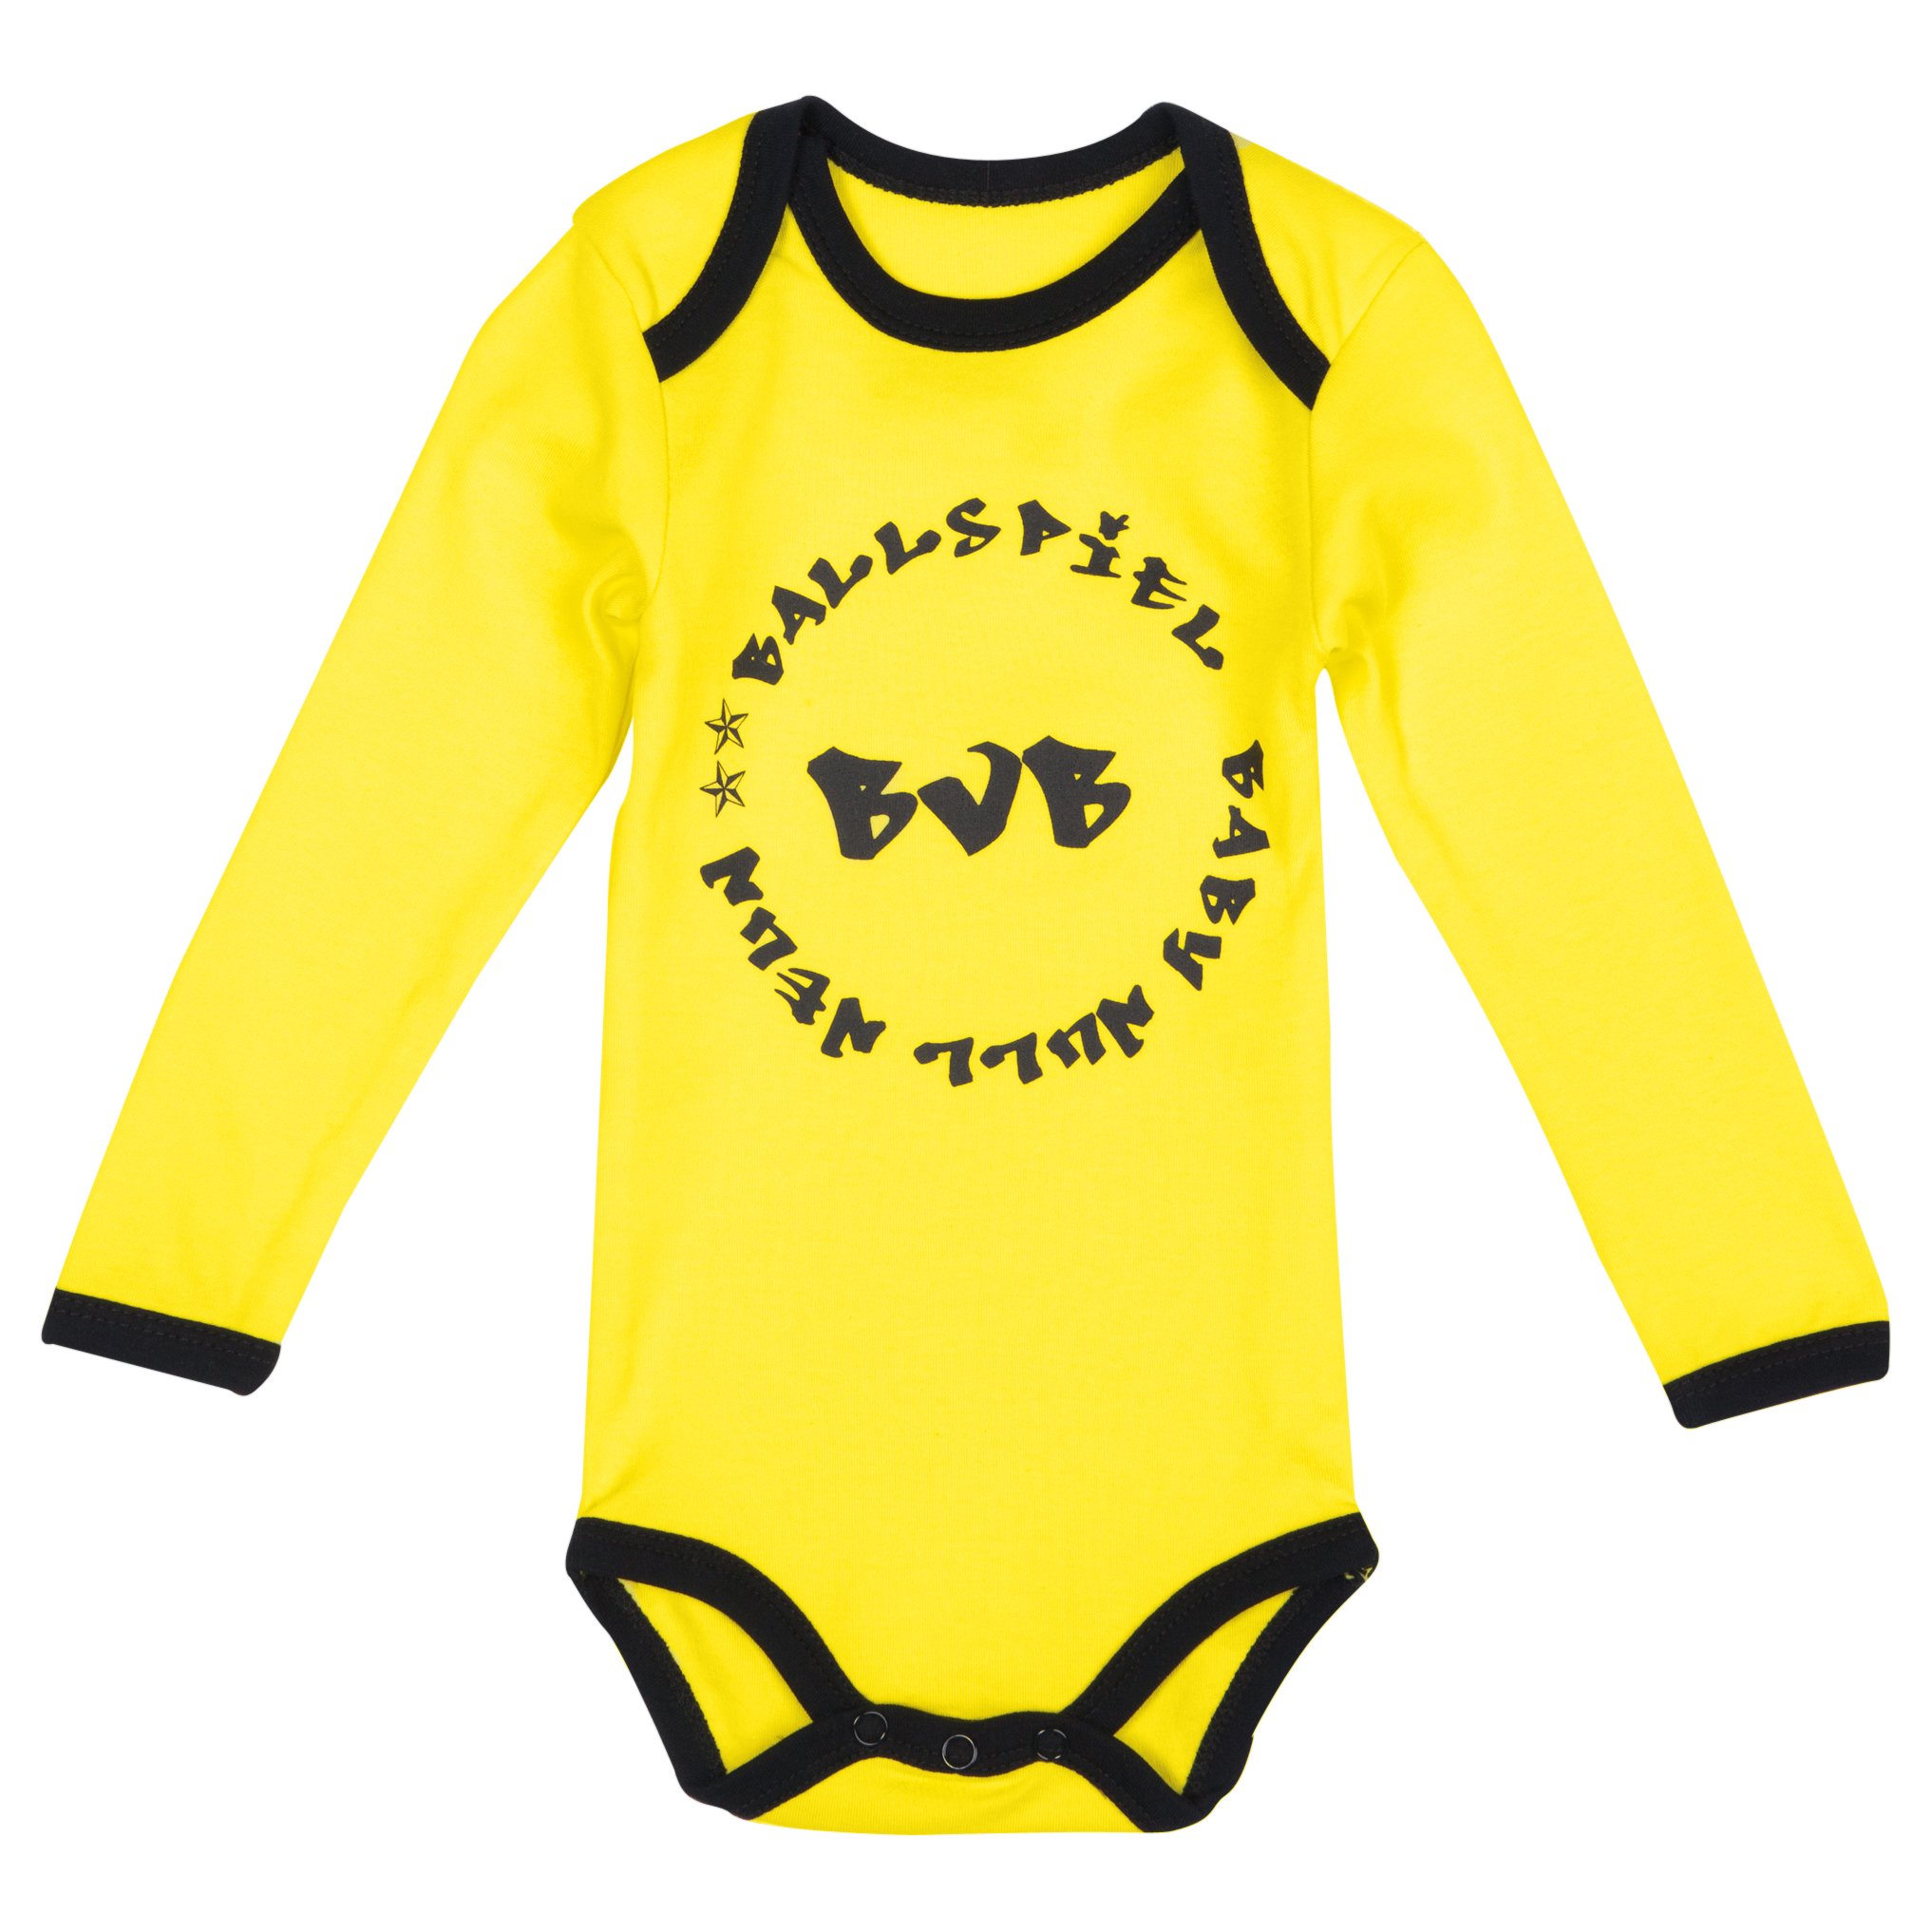 BVB Long Sleeved Bodysuit Baby Yellow